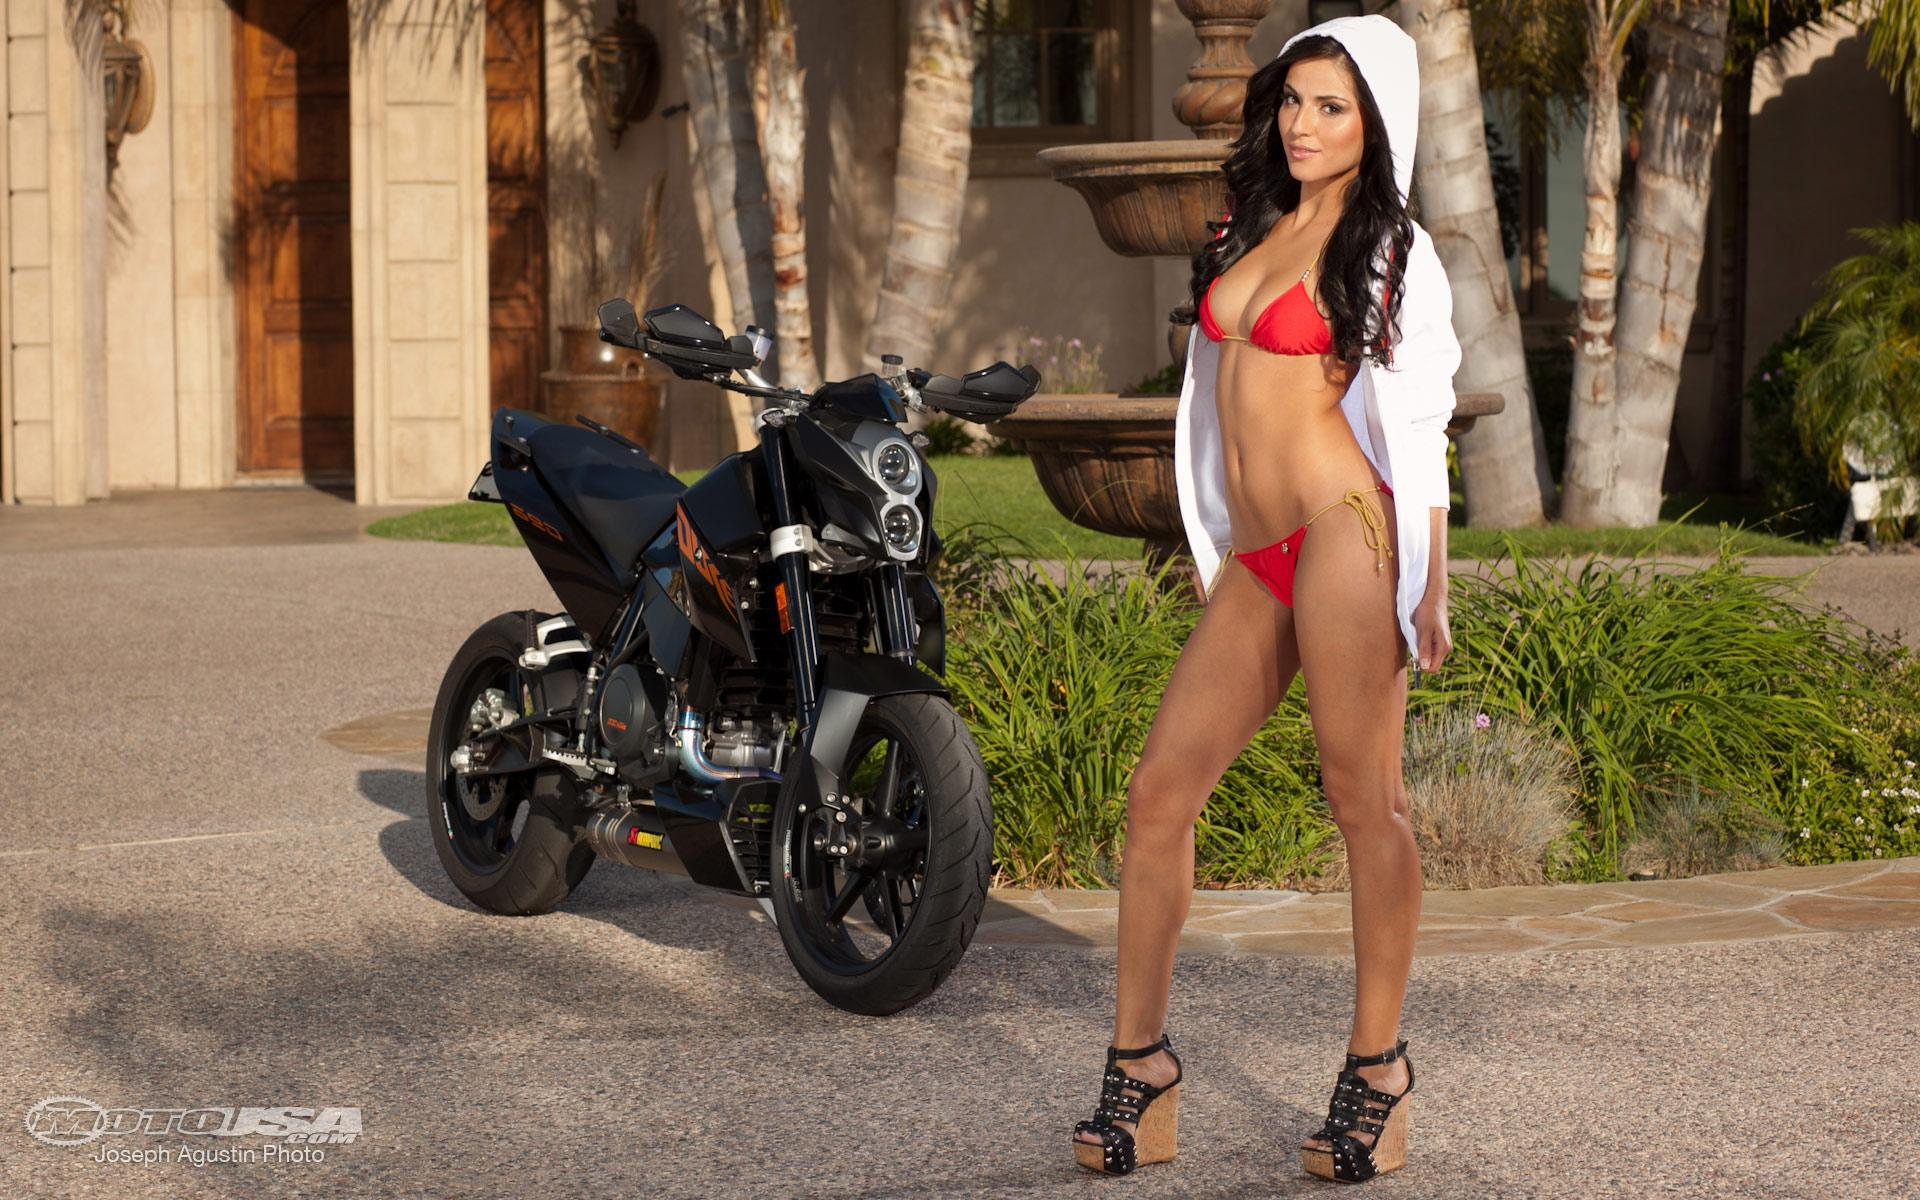 HOT BABE & KTM DUKE 690